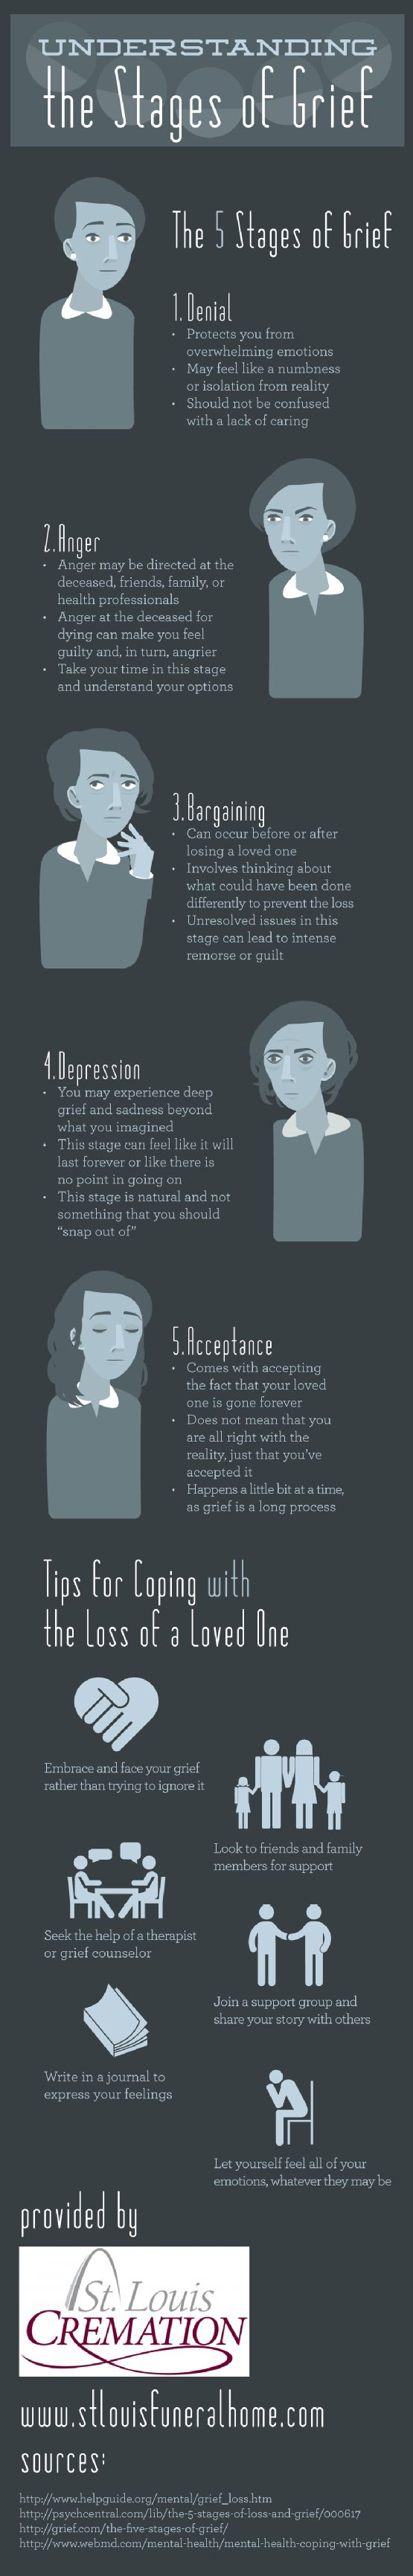 Understanding The Stages Of Grief #Infographic #Health #Grief